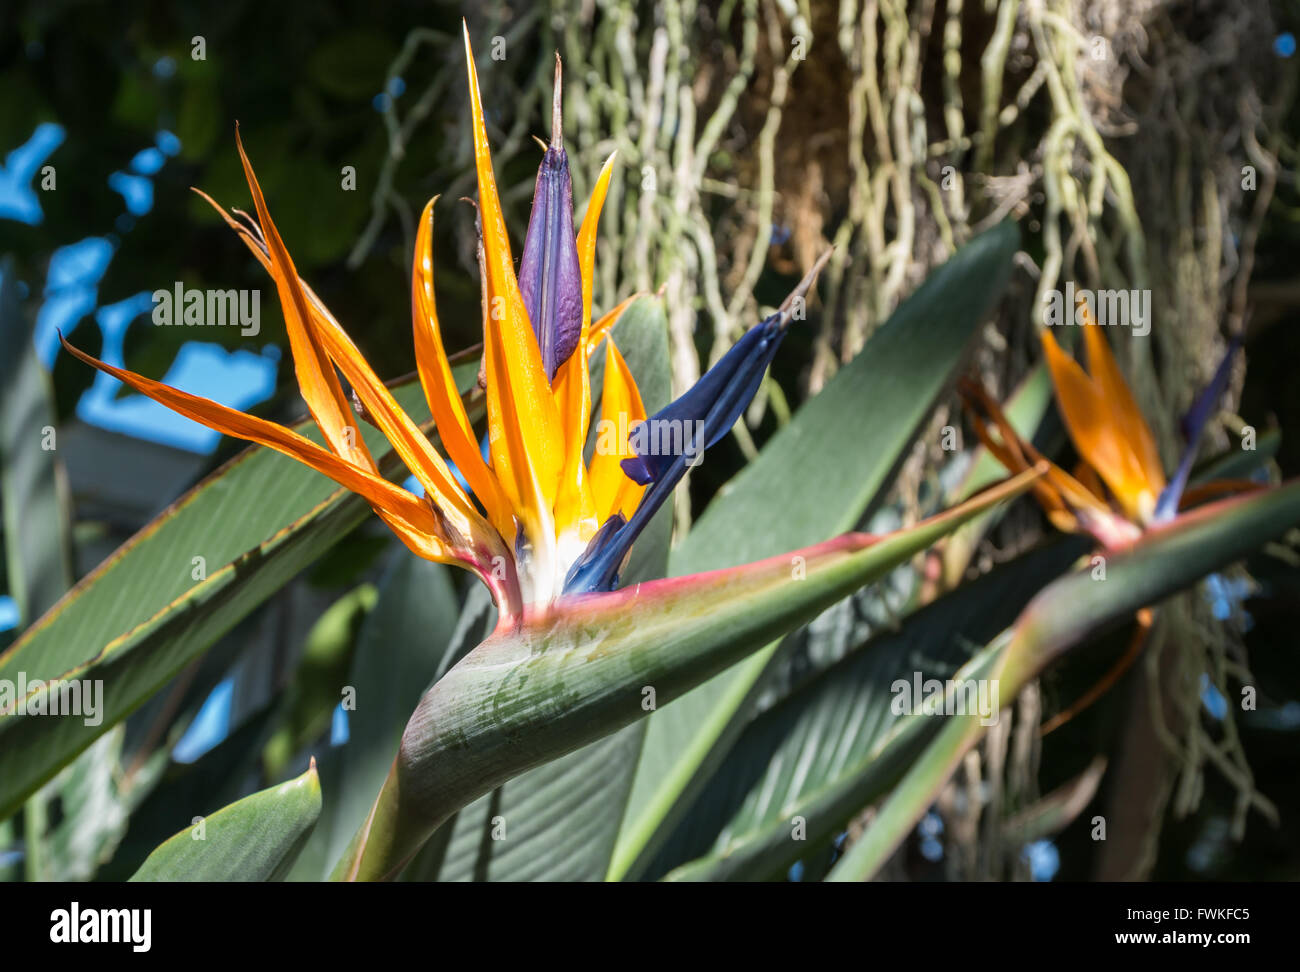 Close up of flower on Bird of Paradise plant (Strelitzia - Strelitziaceae) in a conservatory - Stock Image